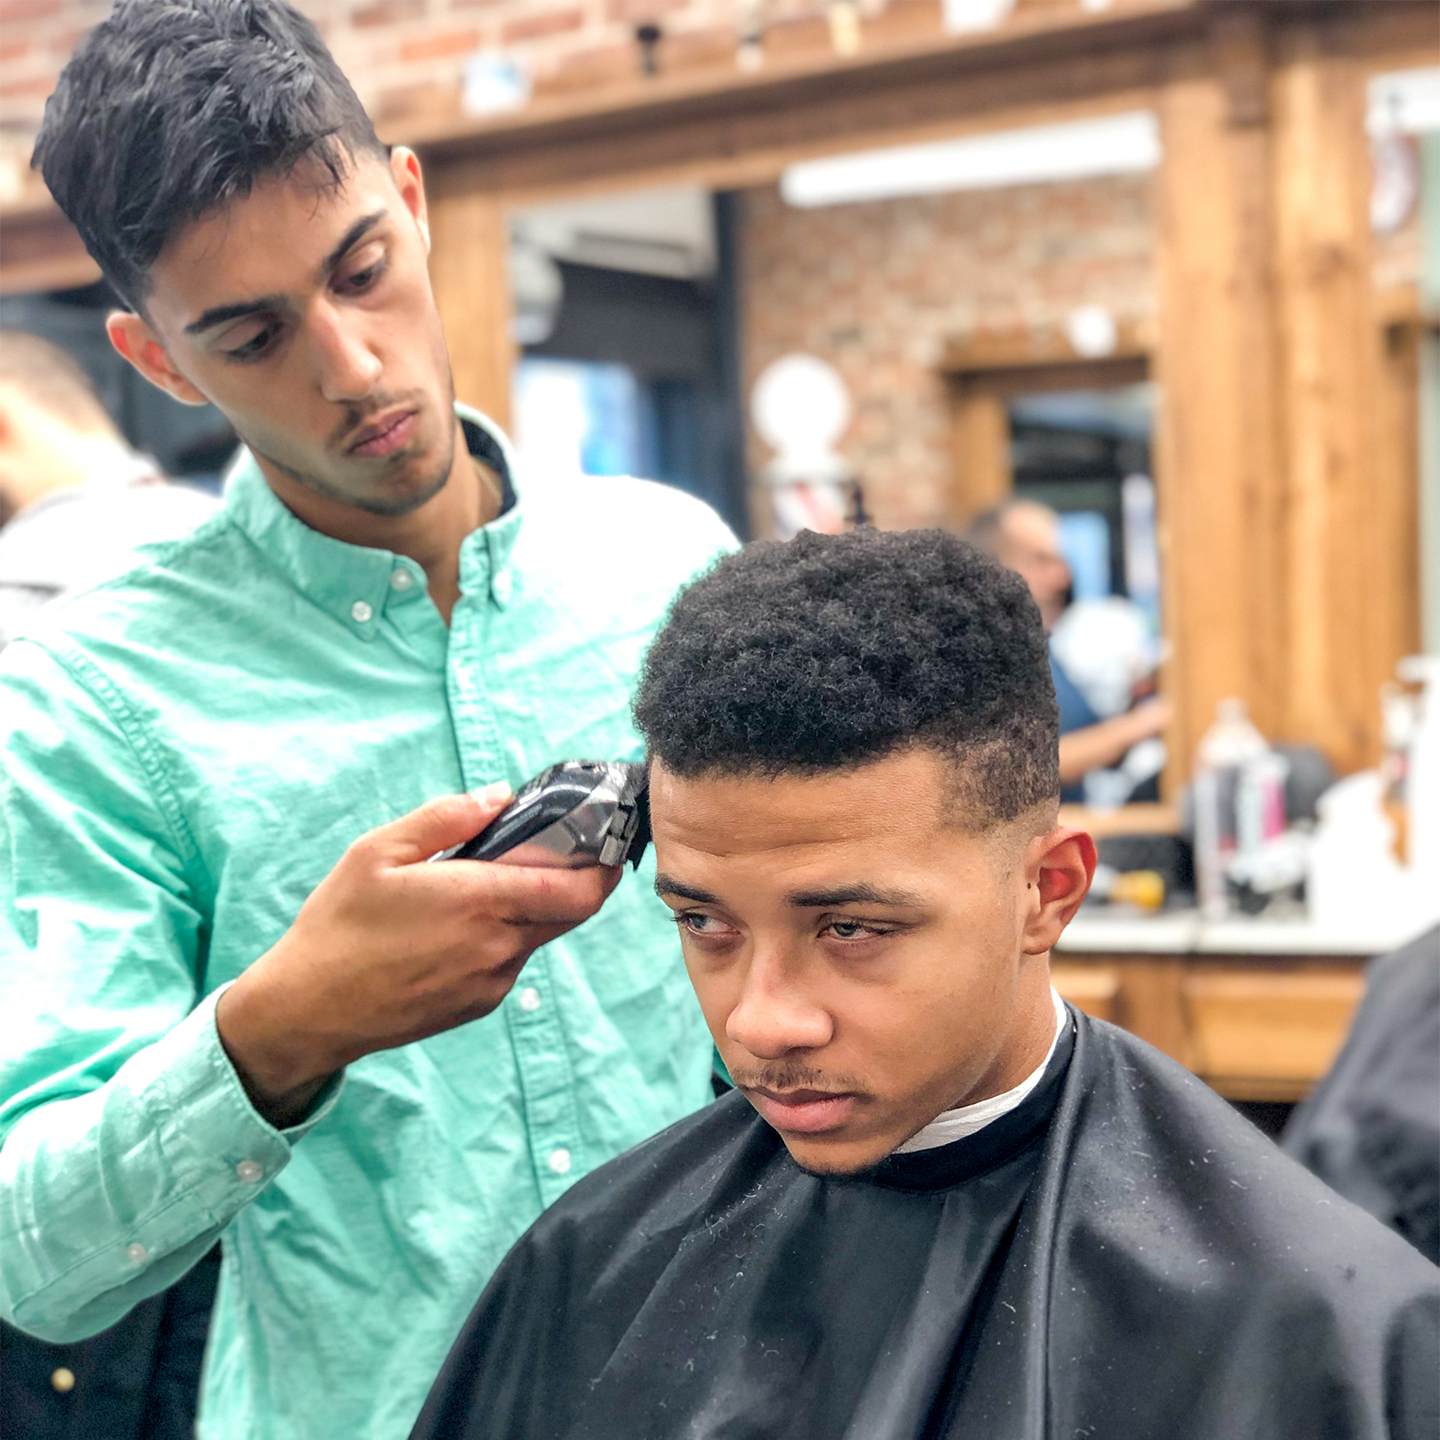 A barber (left) uses a trimmer to style the hair of a young man (right) sitting in a chair.